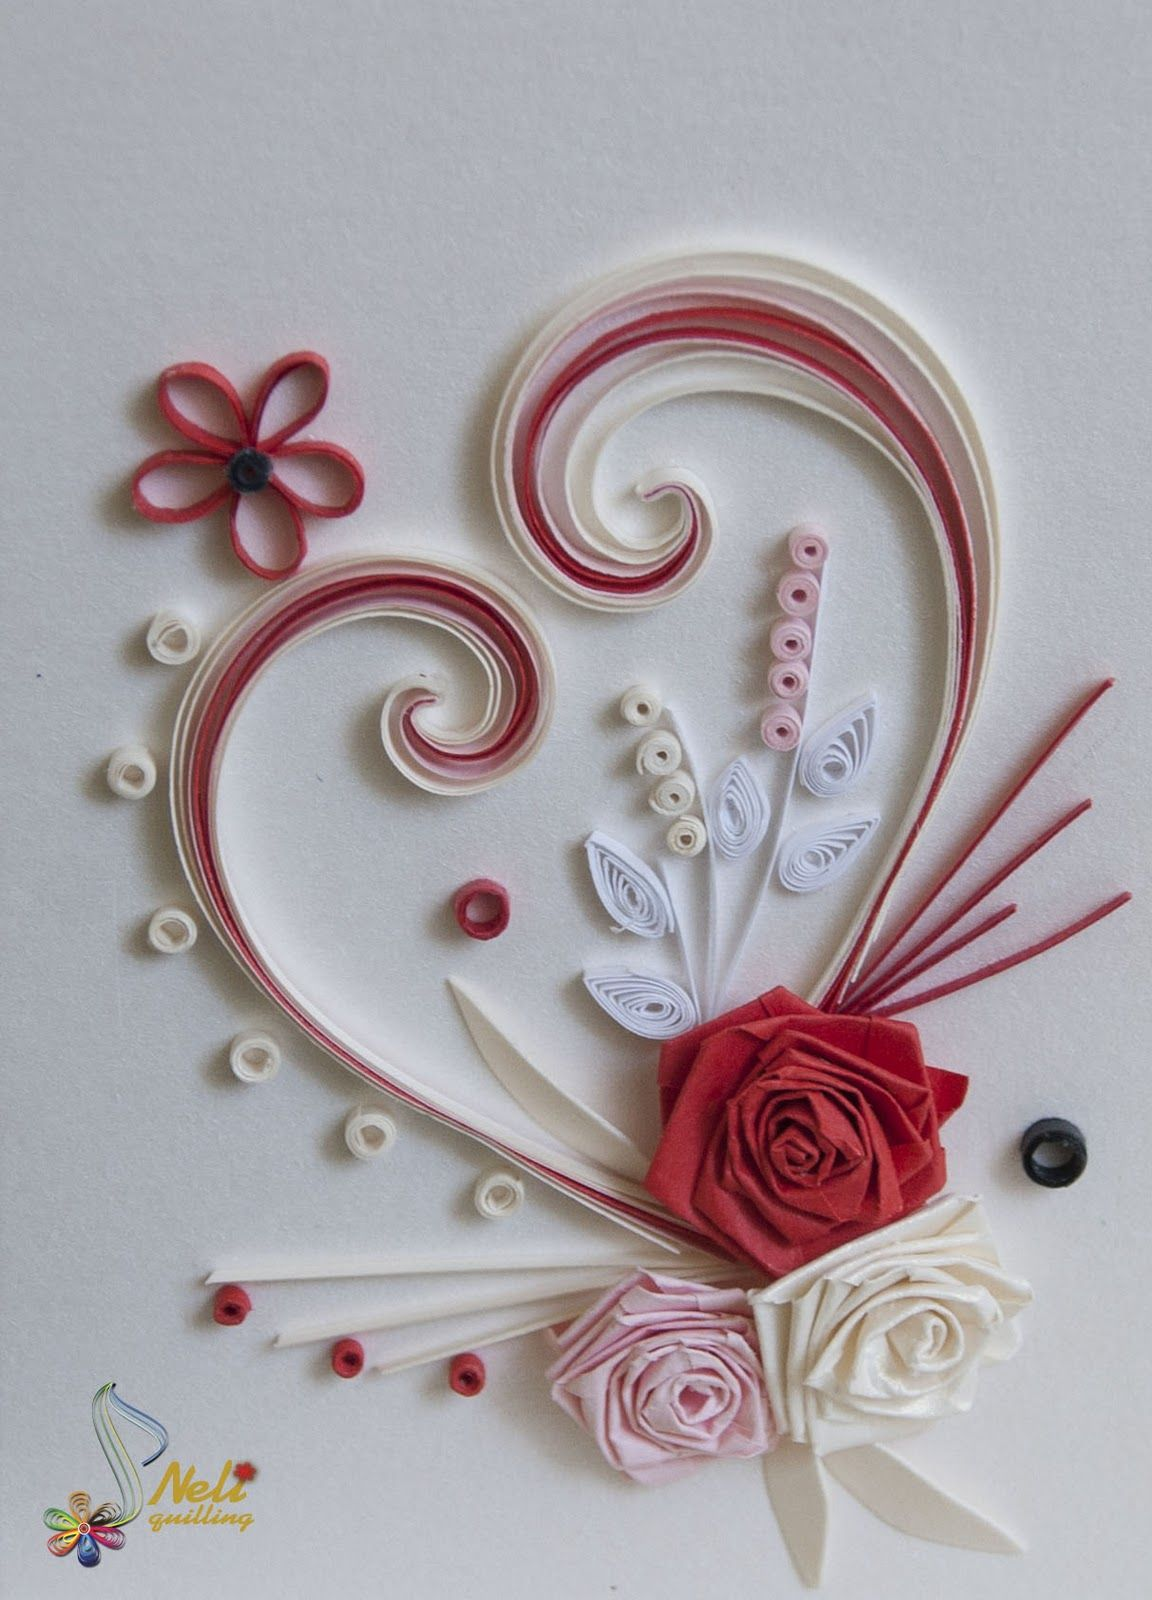 pin by amritha anjaria on craft pinterest paper quilling rh pinterest ca quilling patterns quilling patterns step by step